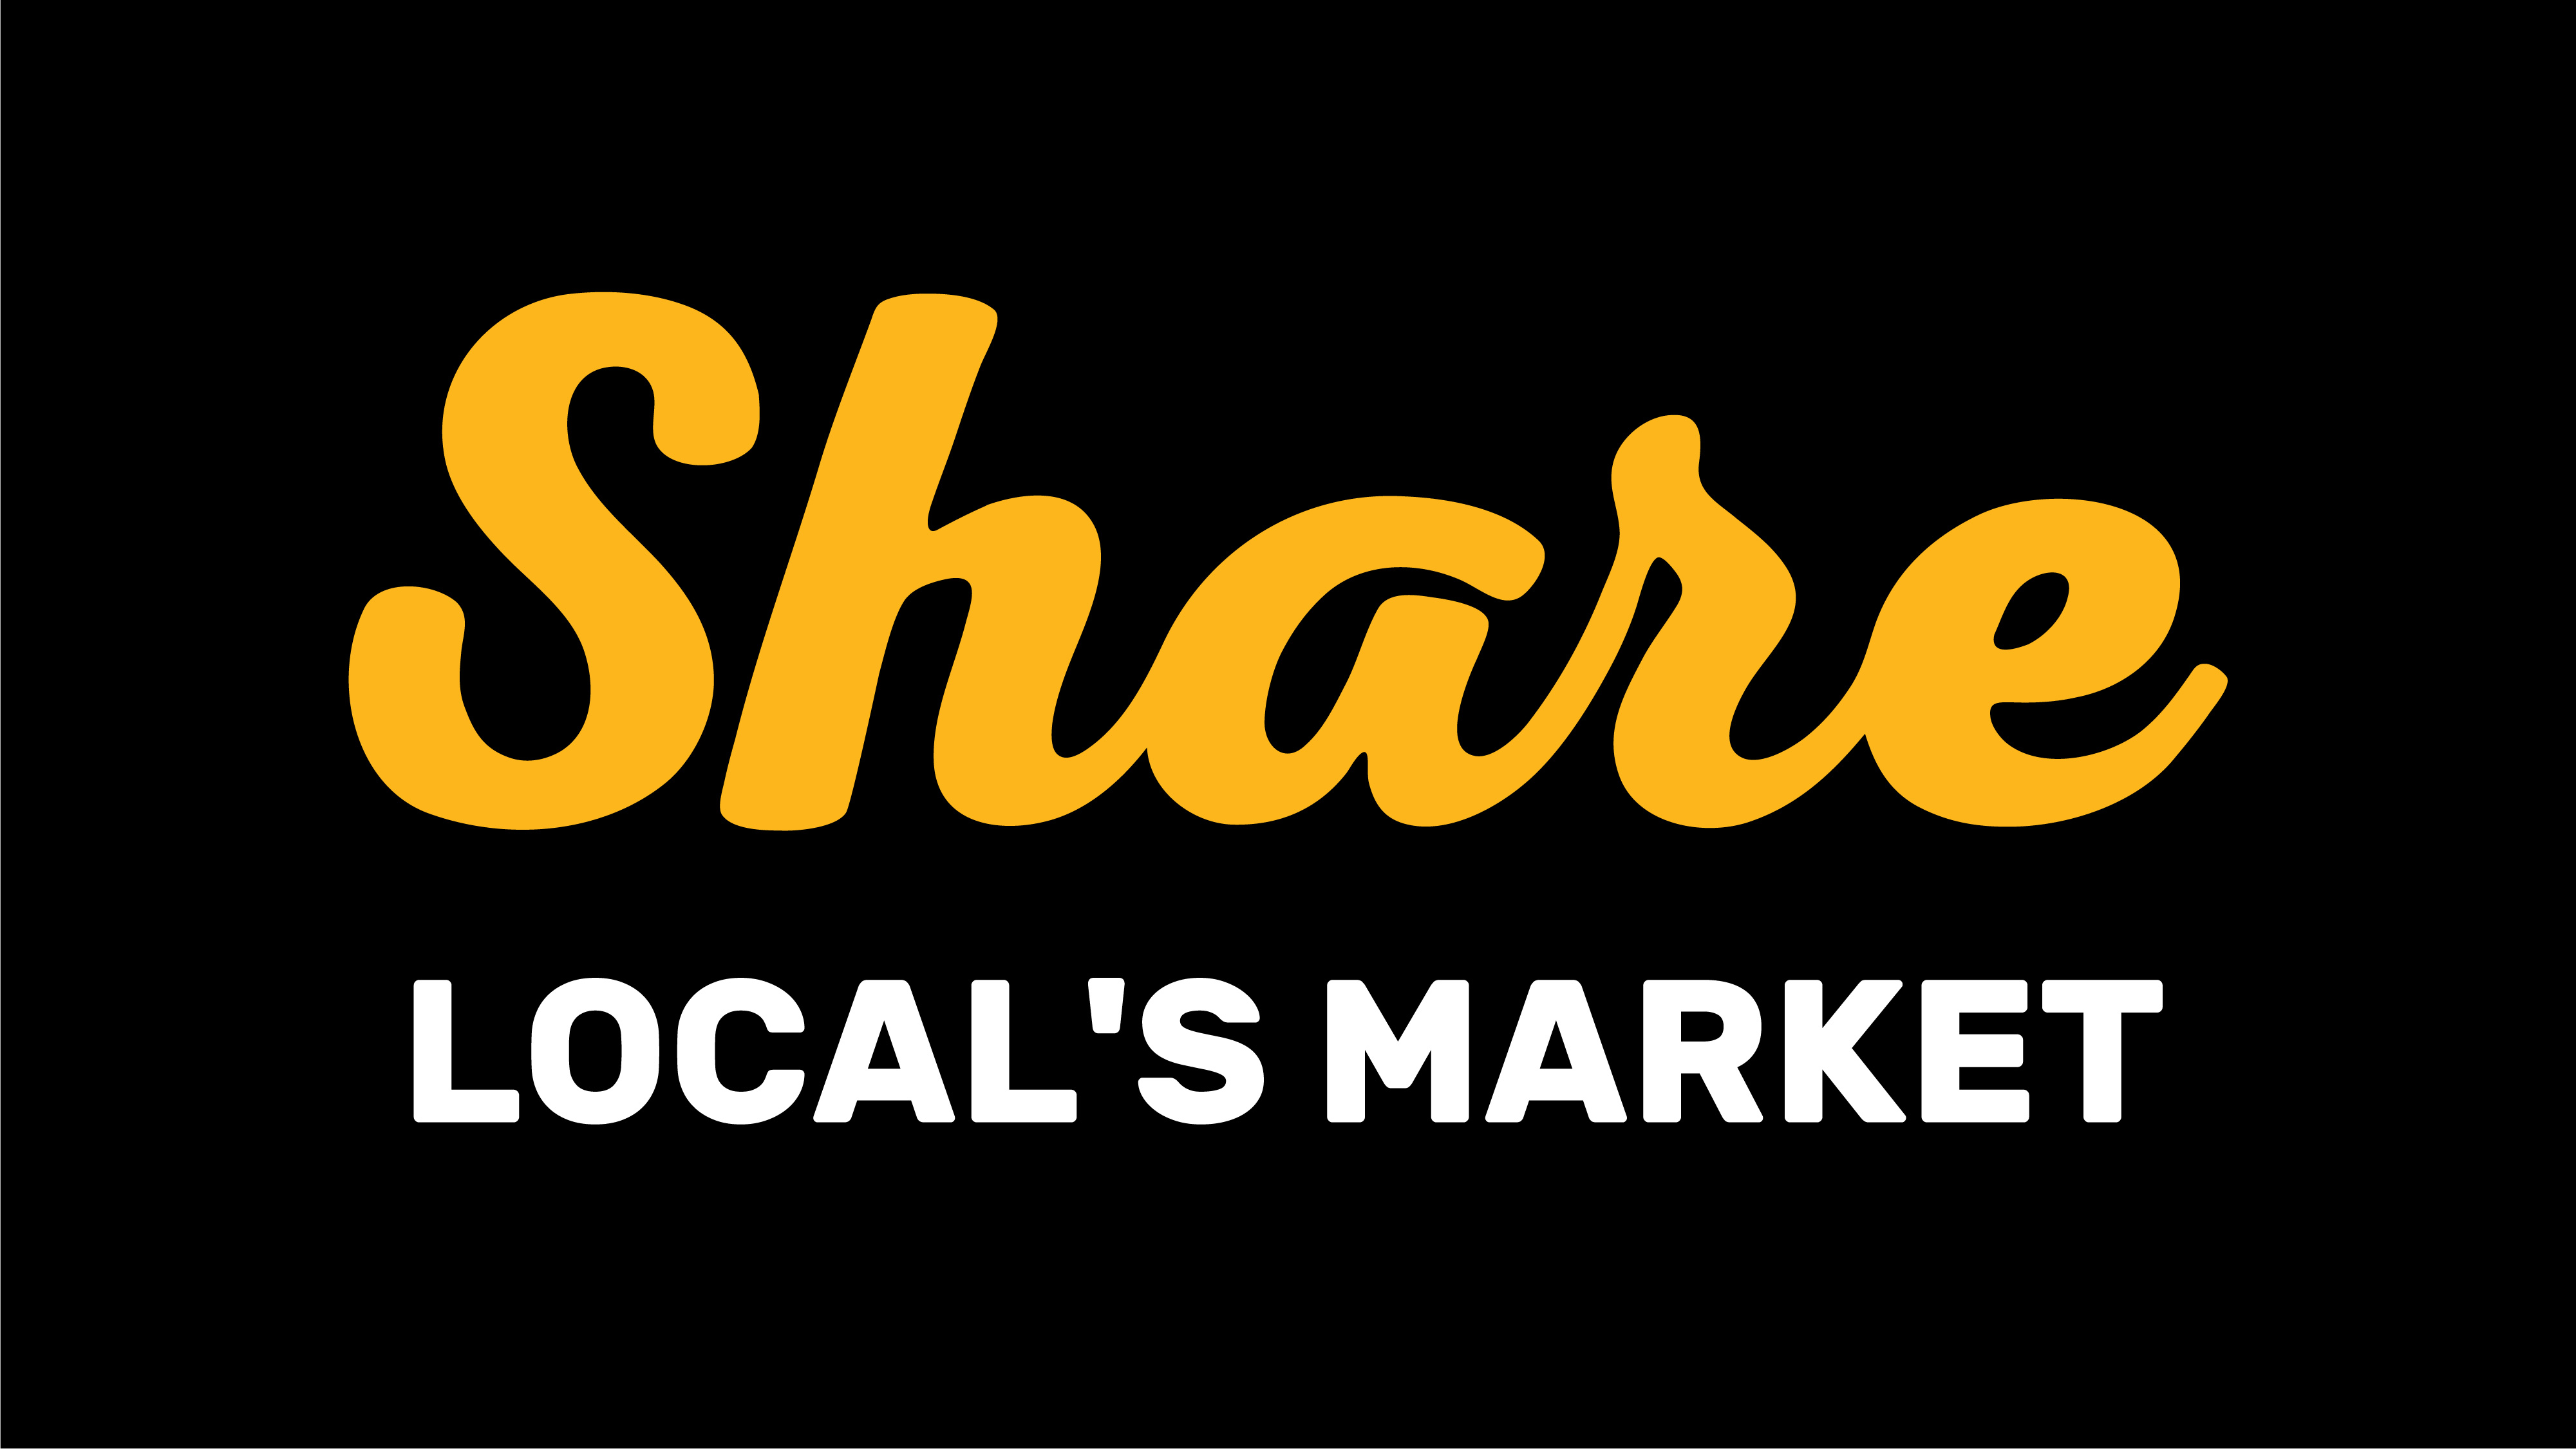 Share Local's Market